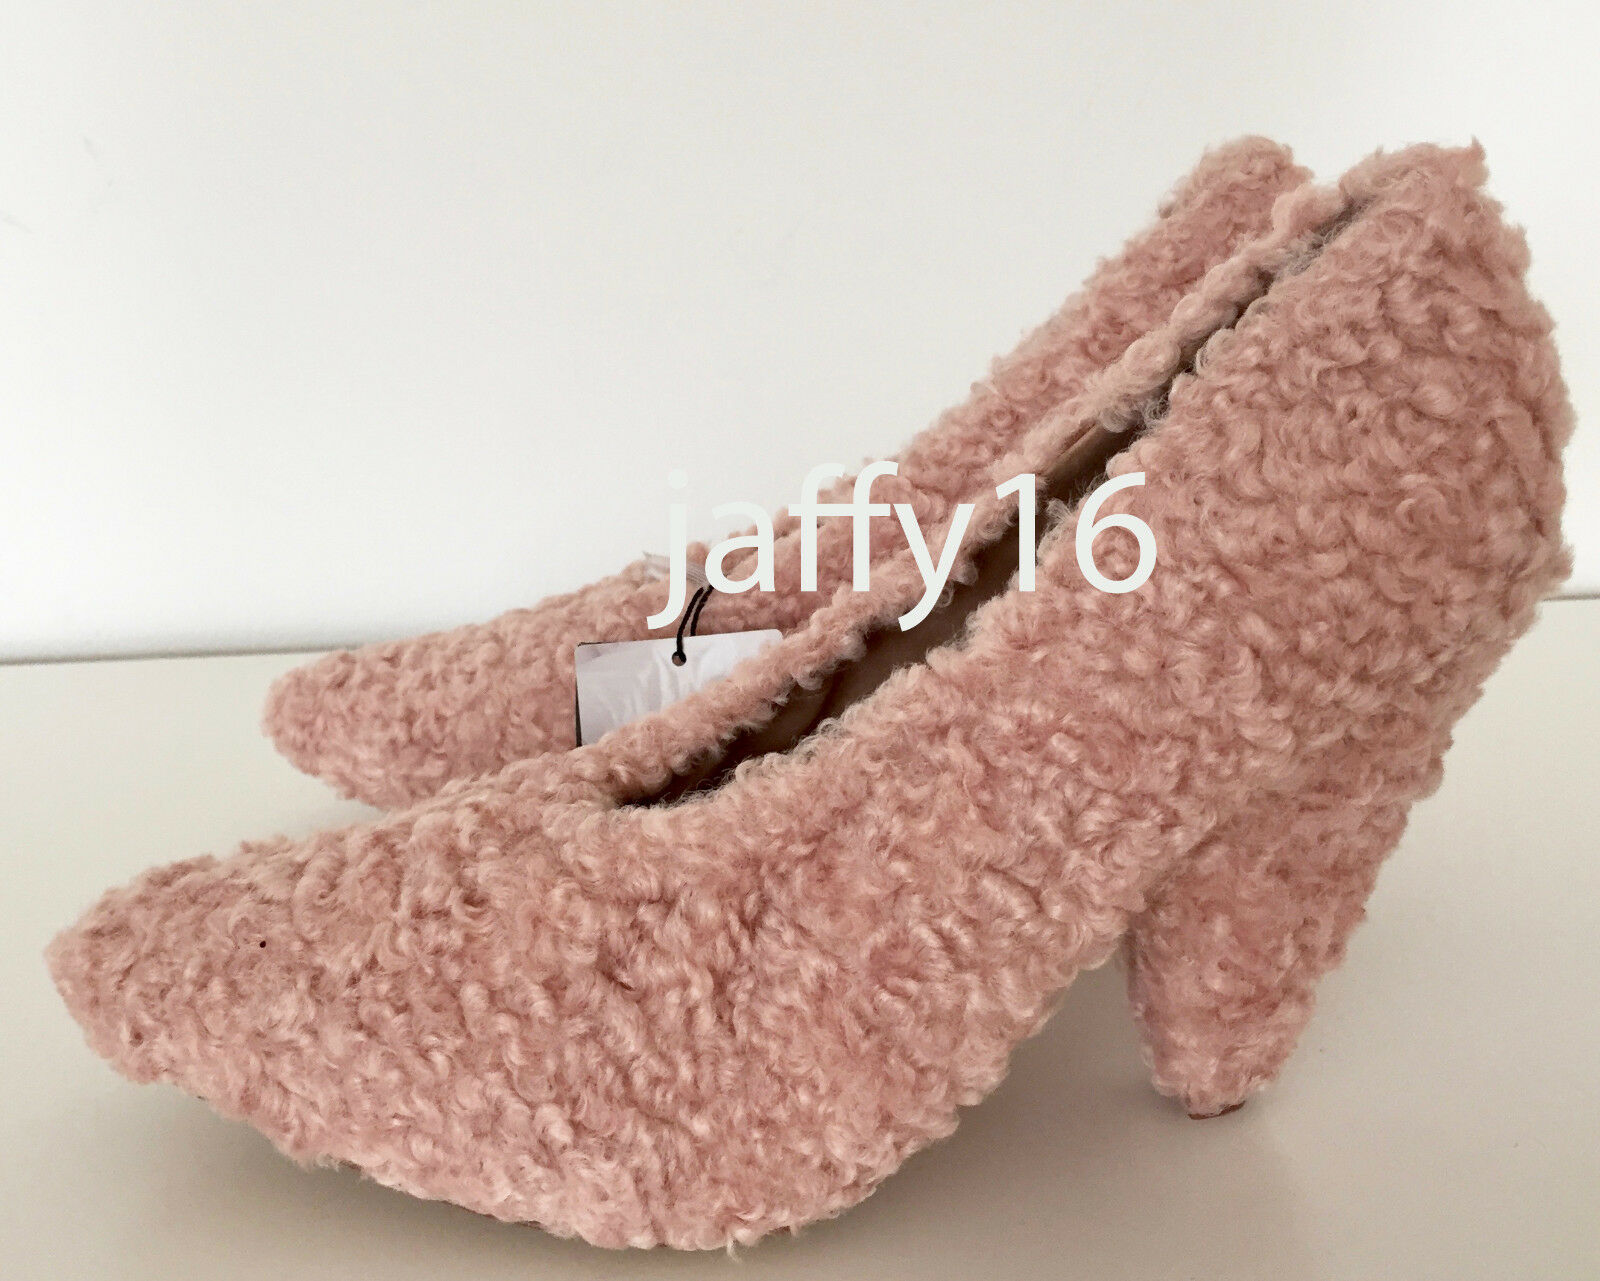 ZARA NEW WOMAN FAUX FUR HIGH HEEL COURT schuhe schuhe schuhe Rosa 40-41 REF. 7224 201 9ebb55